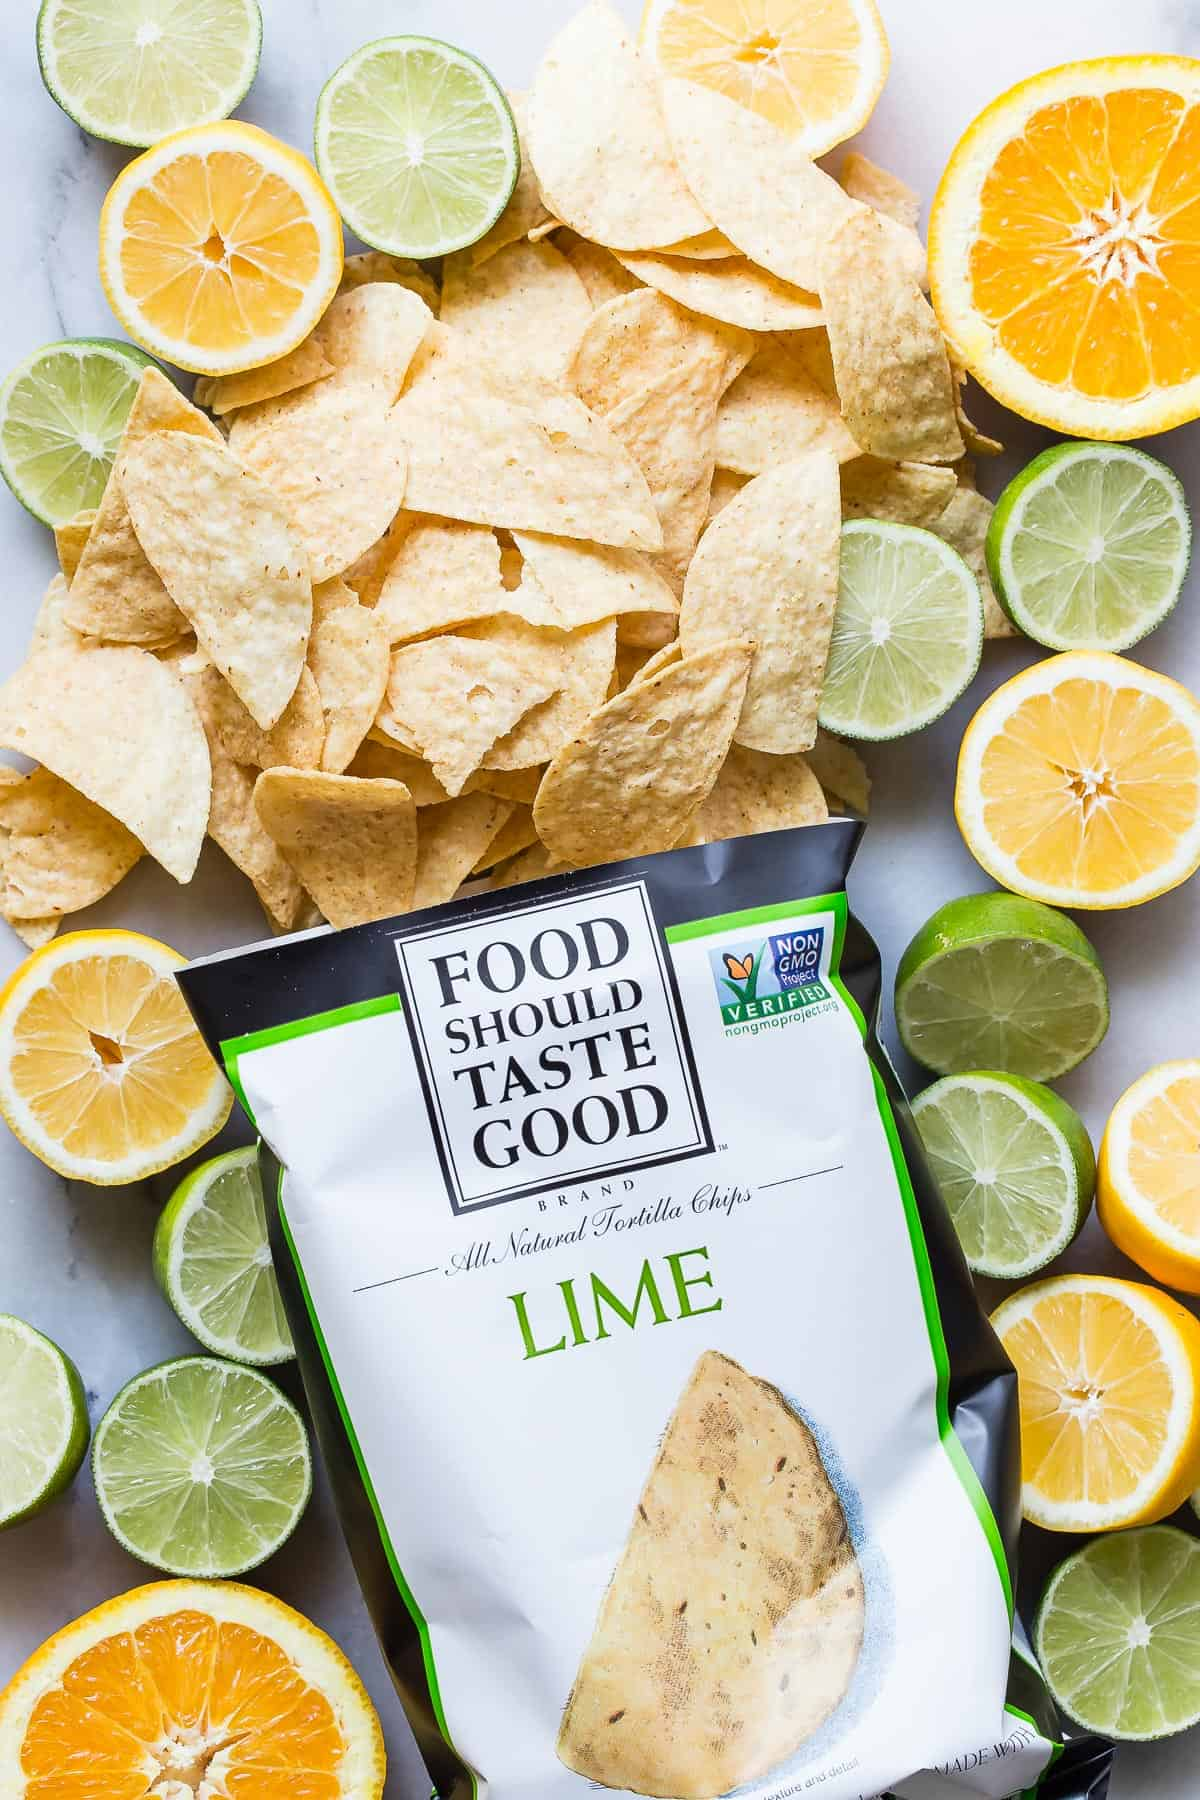 Chips with lemons and limes